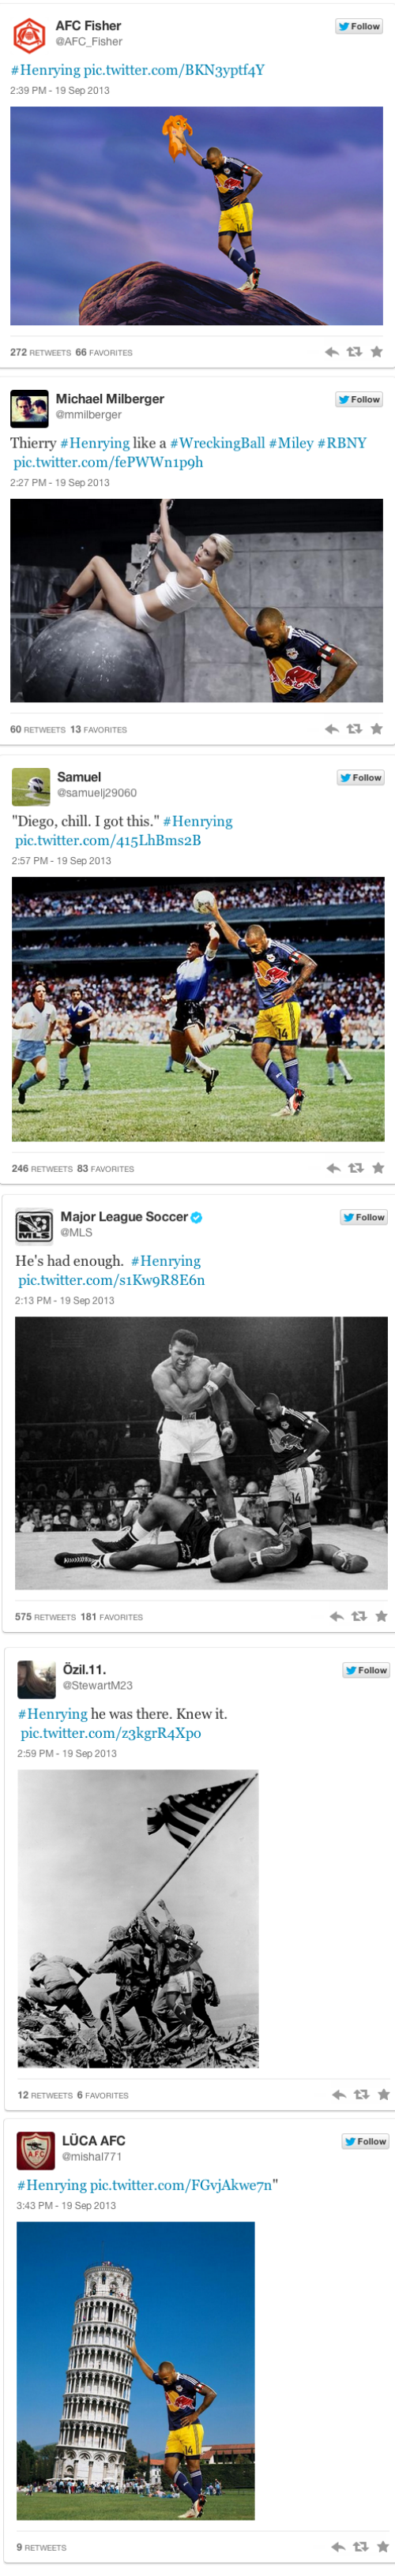 The Recipe For #Henrying, The Other-Football's a Newest Photo Fad